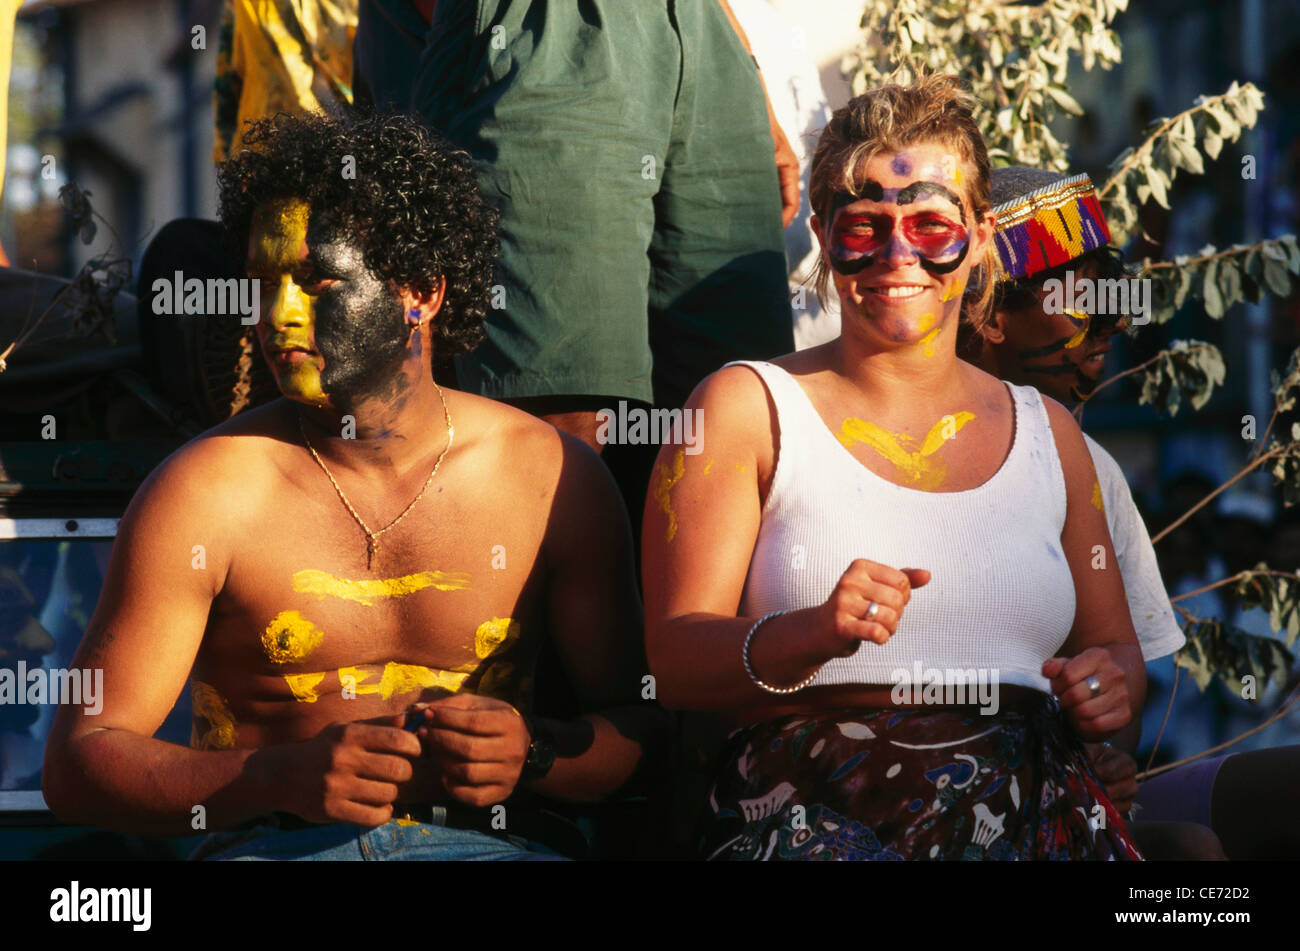 NGS 82570 : tourists with painted faces dancing in goan carnival festival ; panjim ; goa ; india - Stock Image